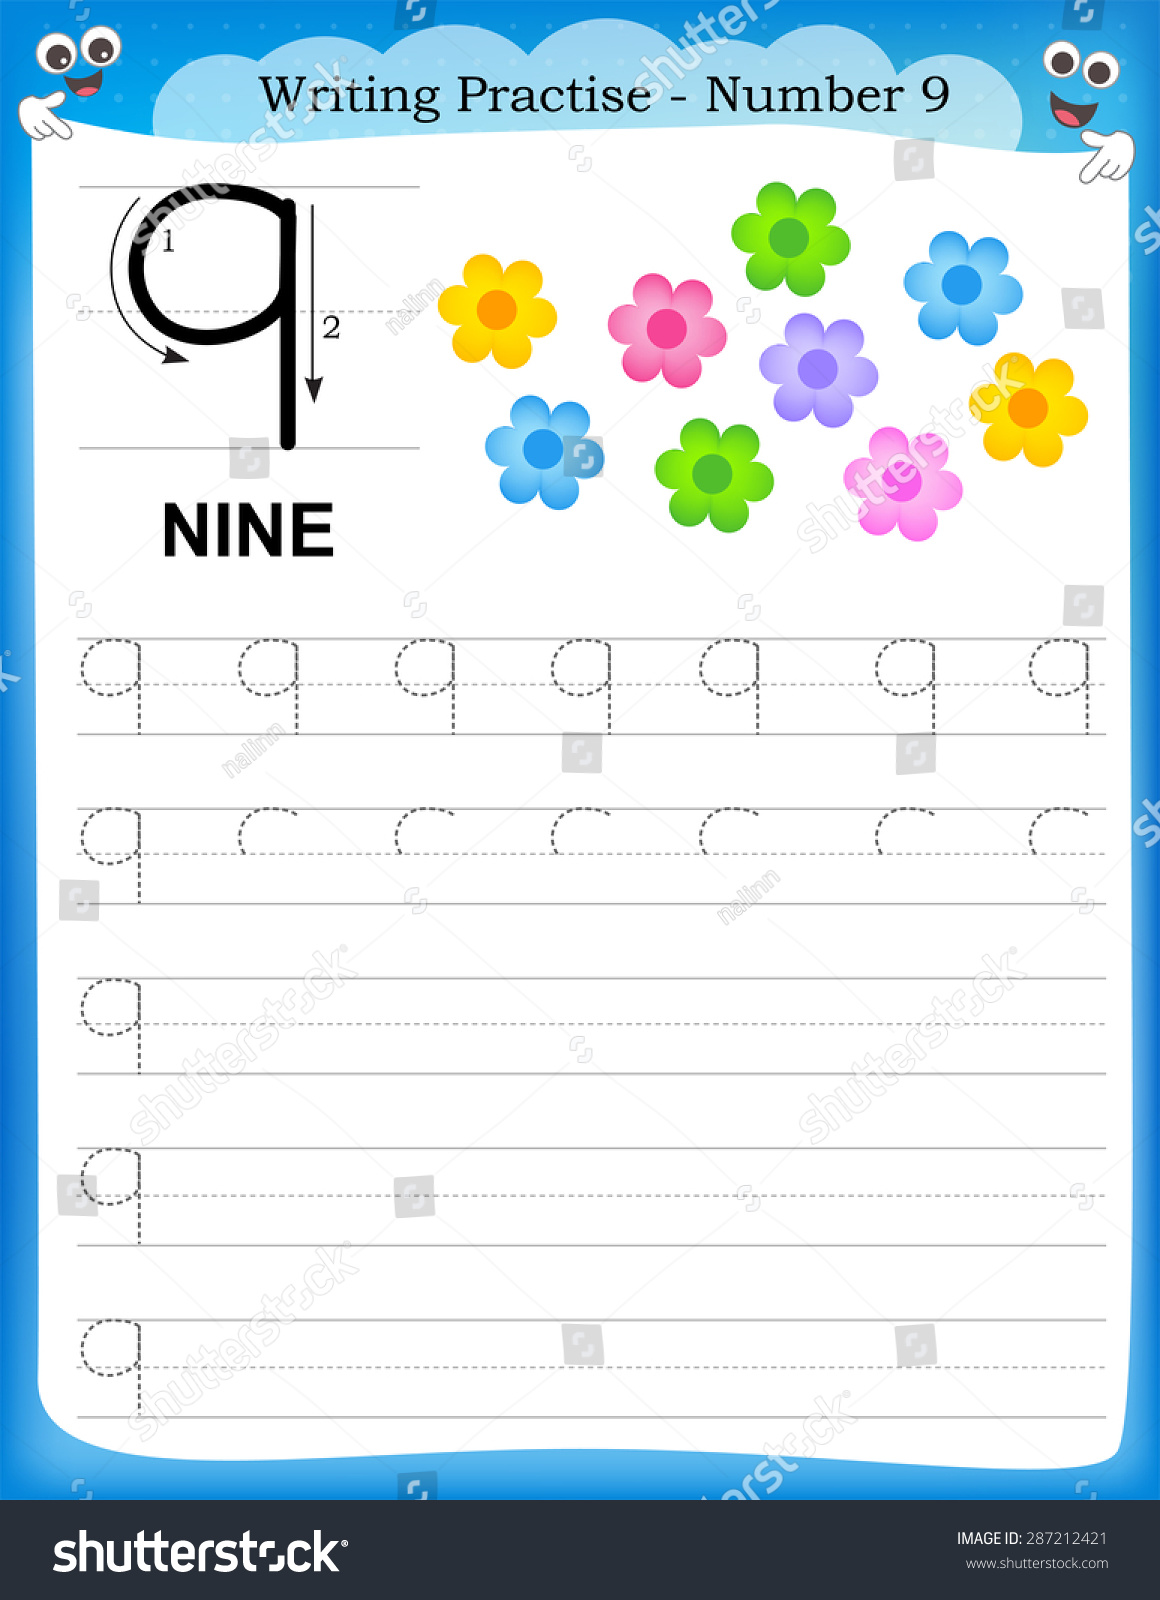 number writing practice worksheets for kindergarten ~ Brandonbrice.us